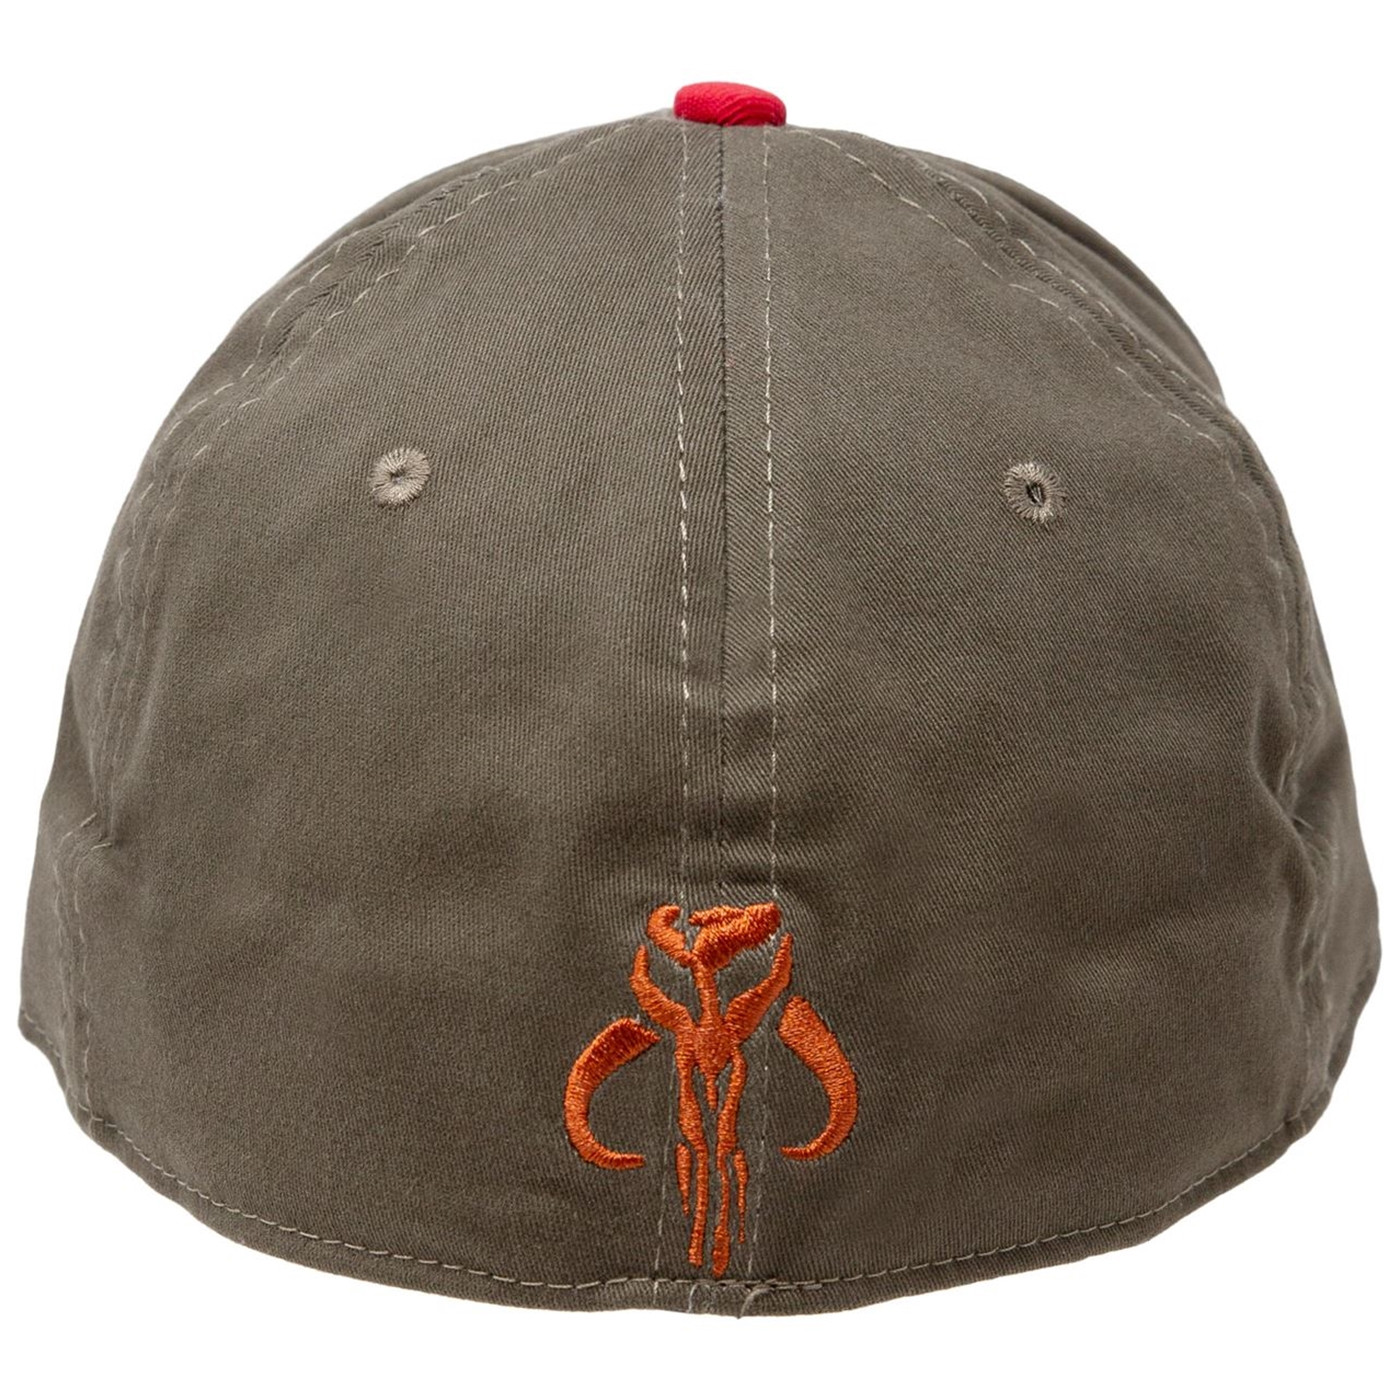 Star Wars Boba Fett Stretch Fit Hat